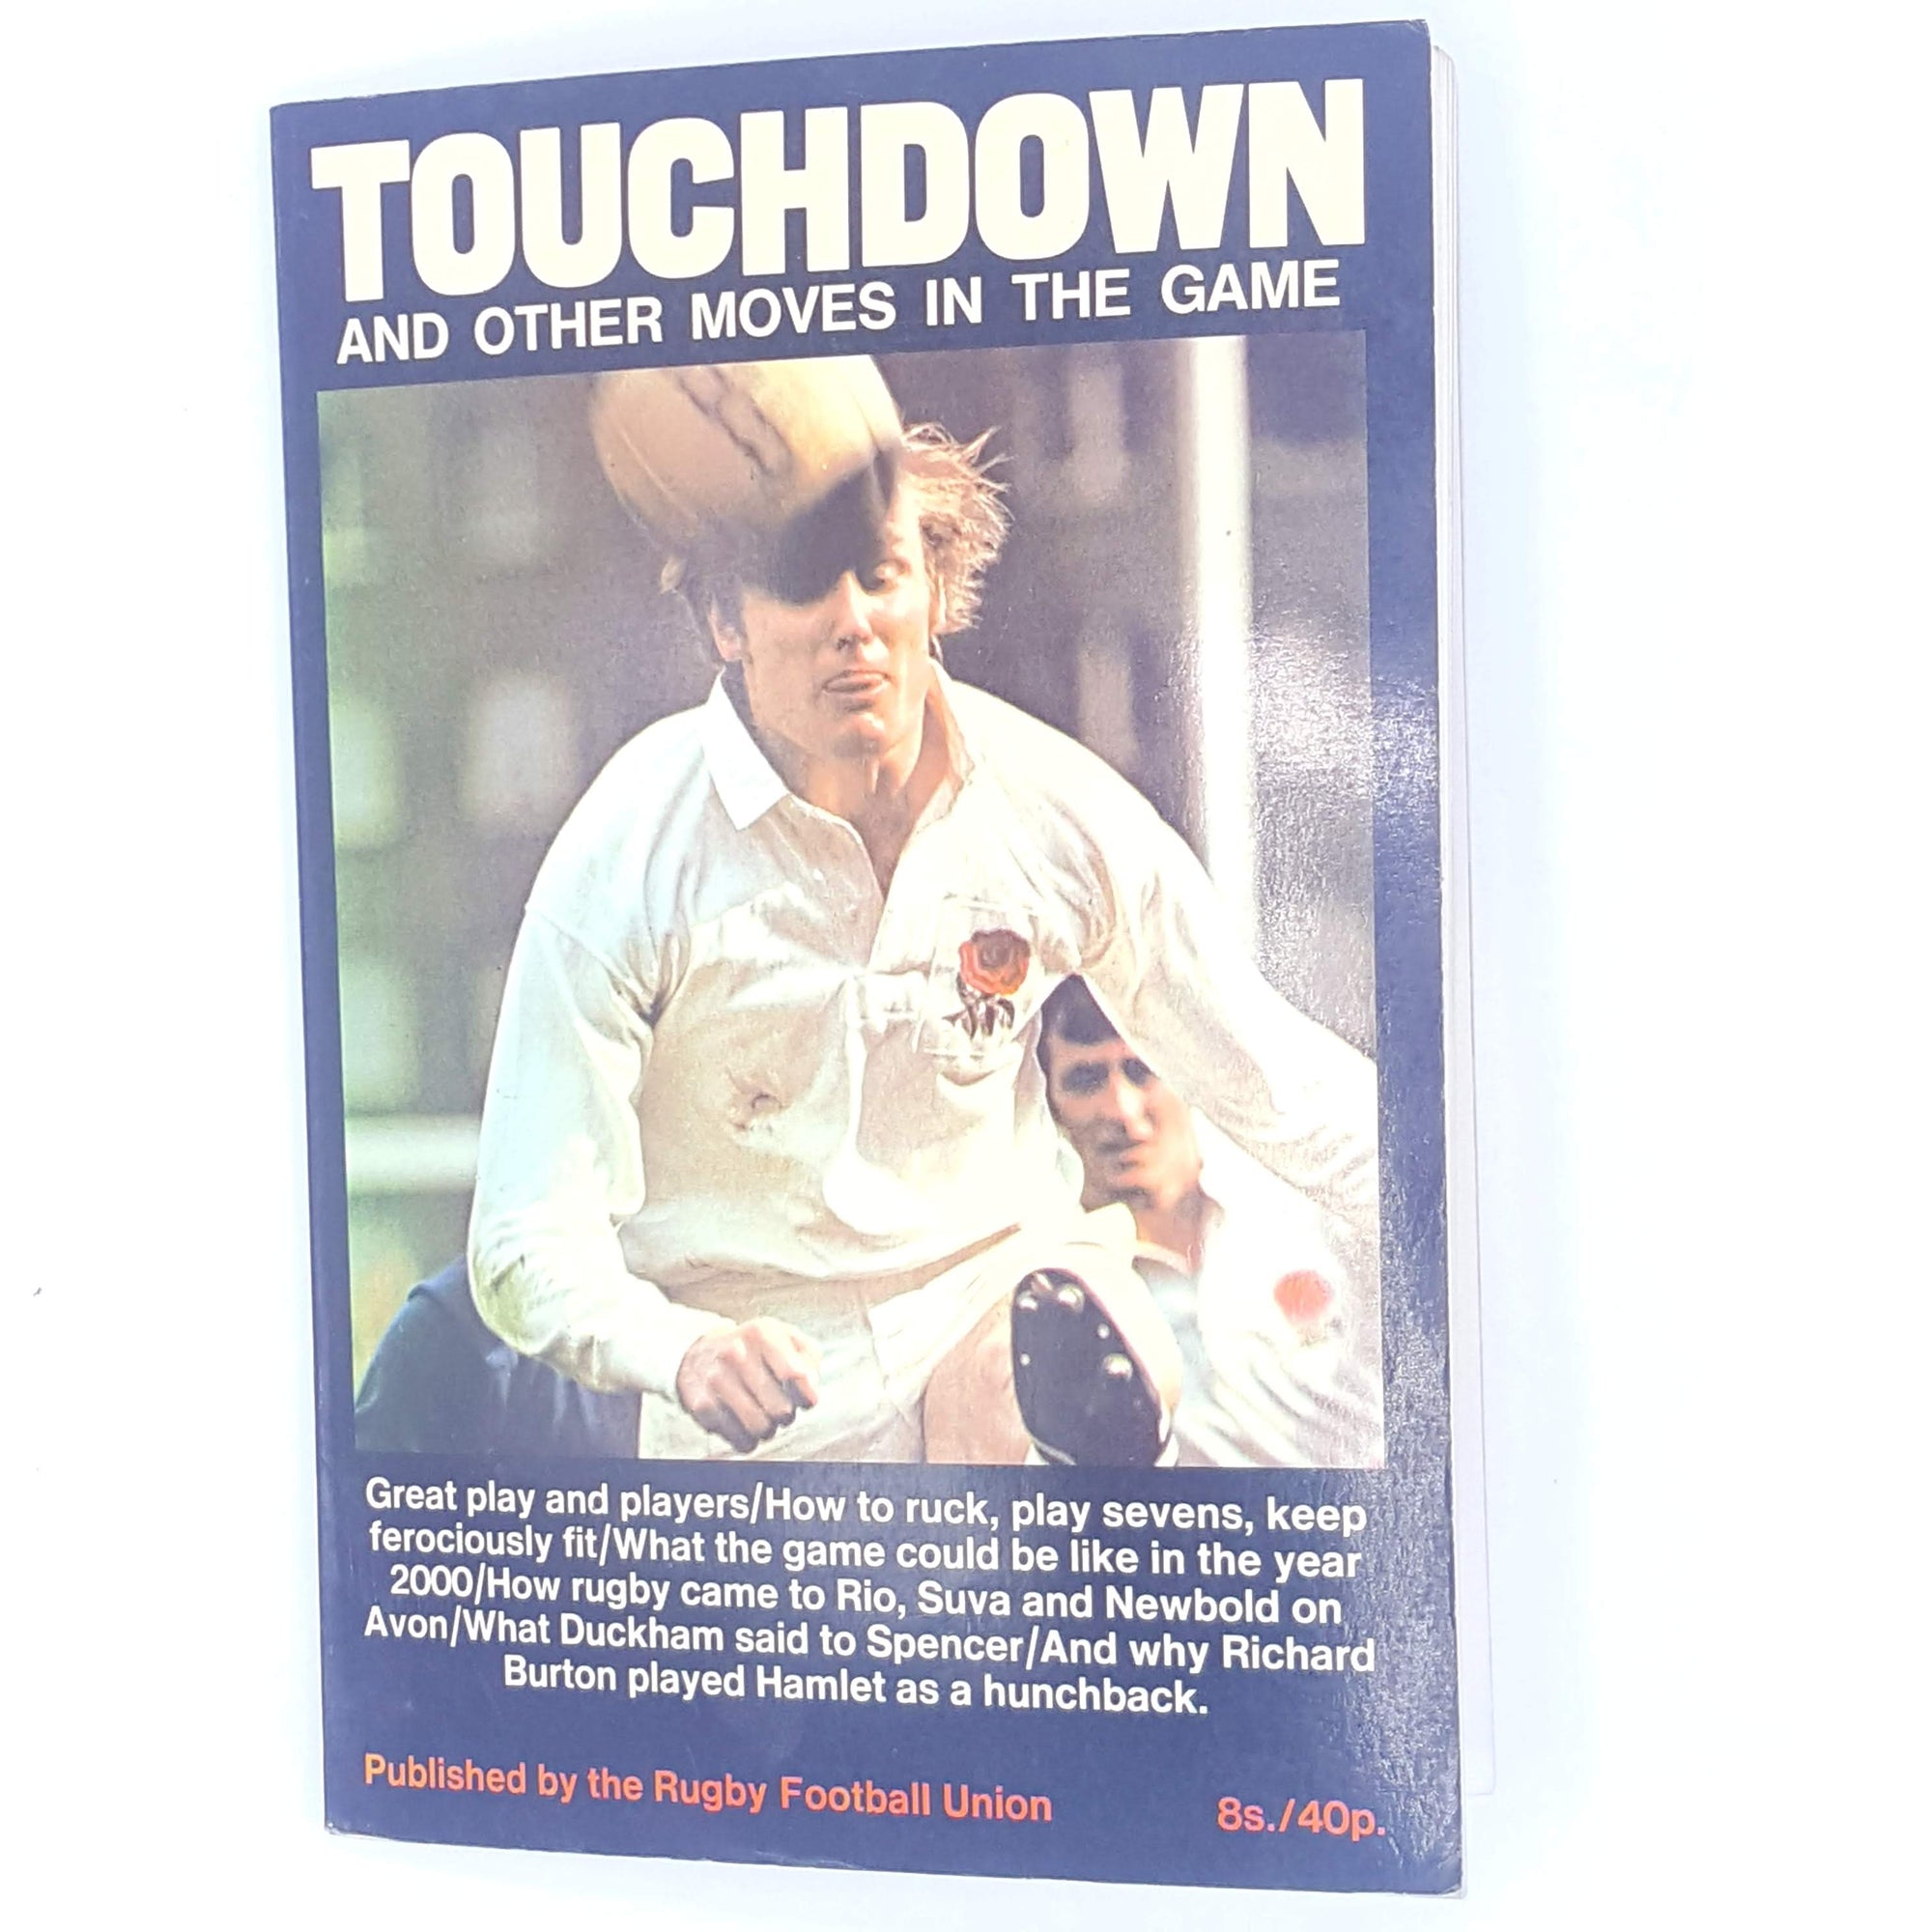 Touchdown and other moves in the game, published by the rugby football union